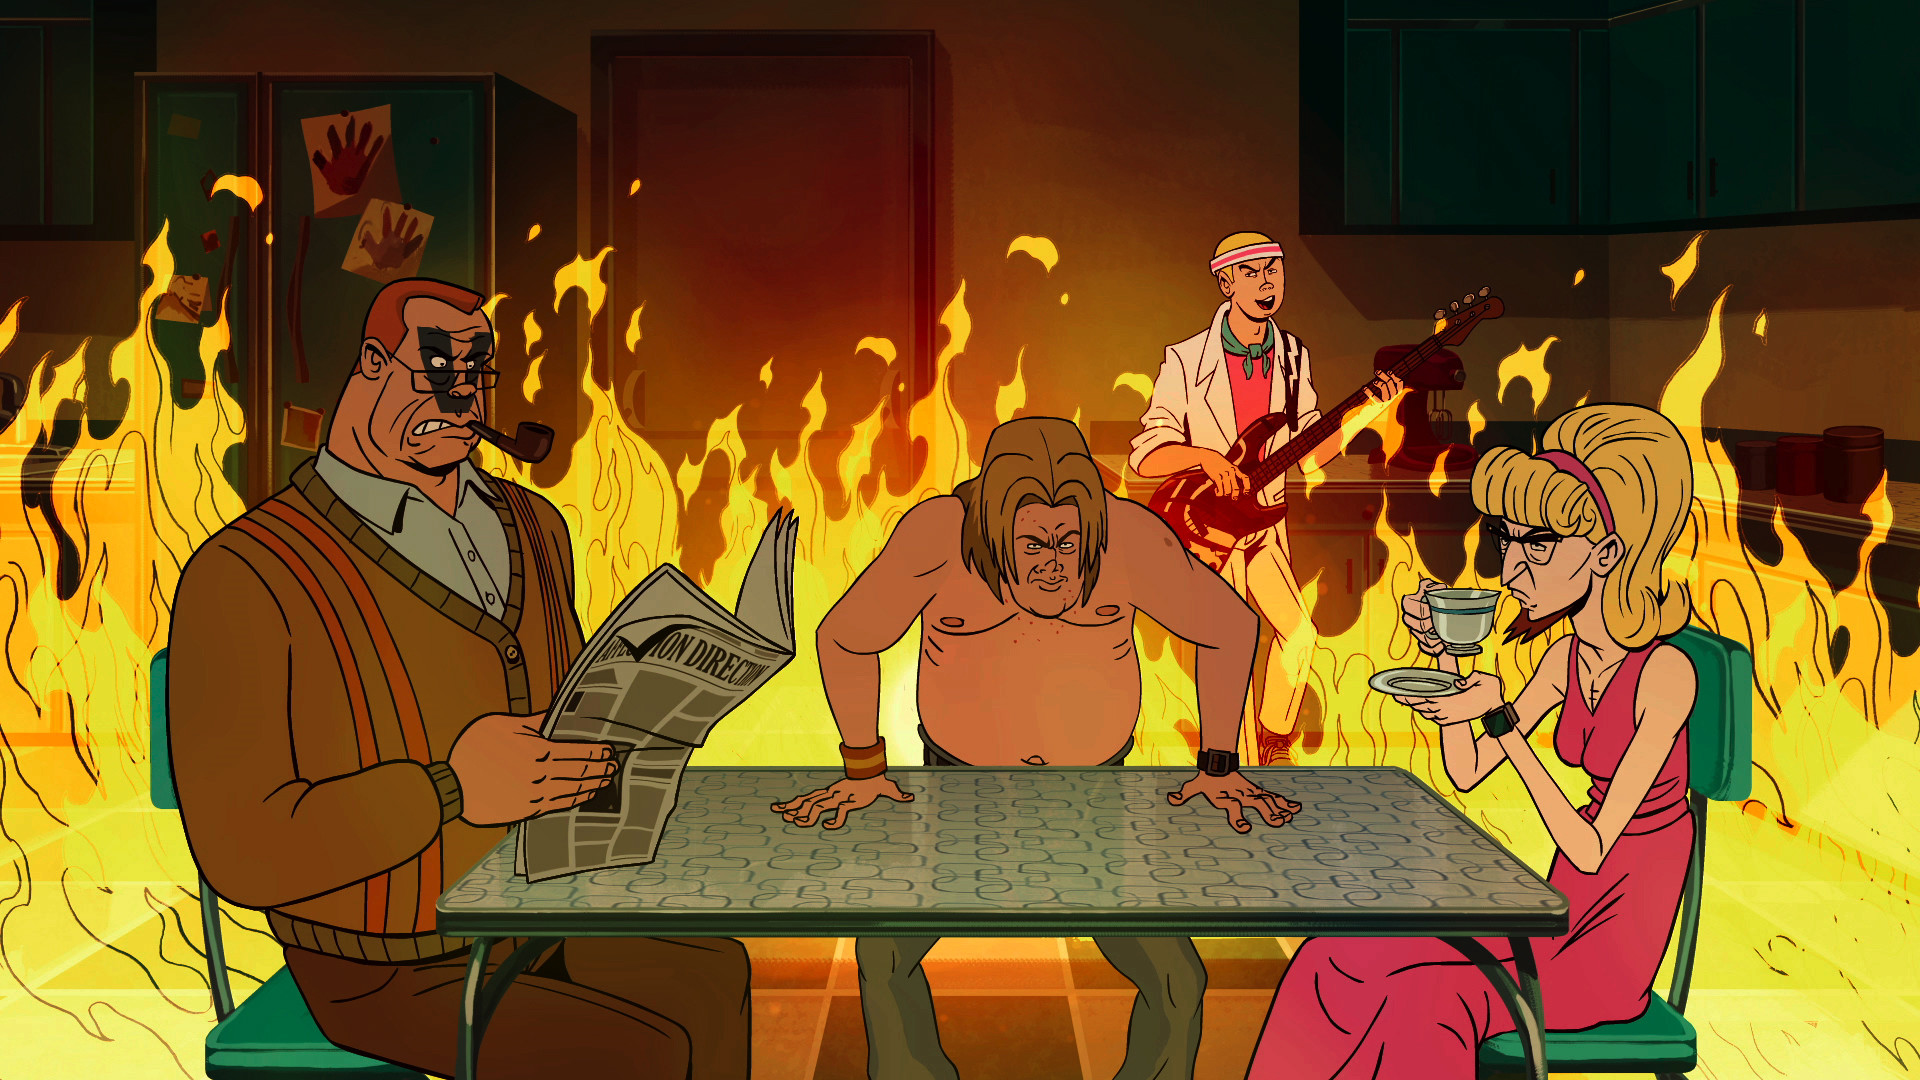 1920x1080 The Venture Bros. Wallpaper 24 - 1920 X 1080